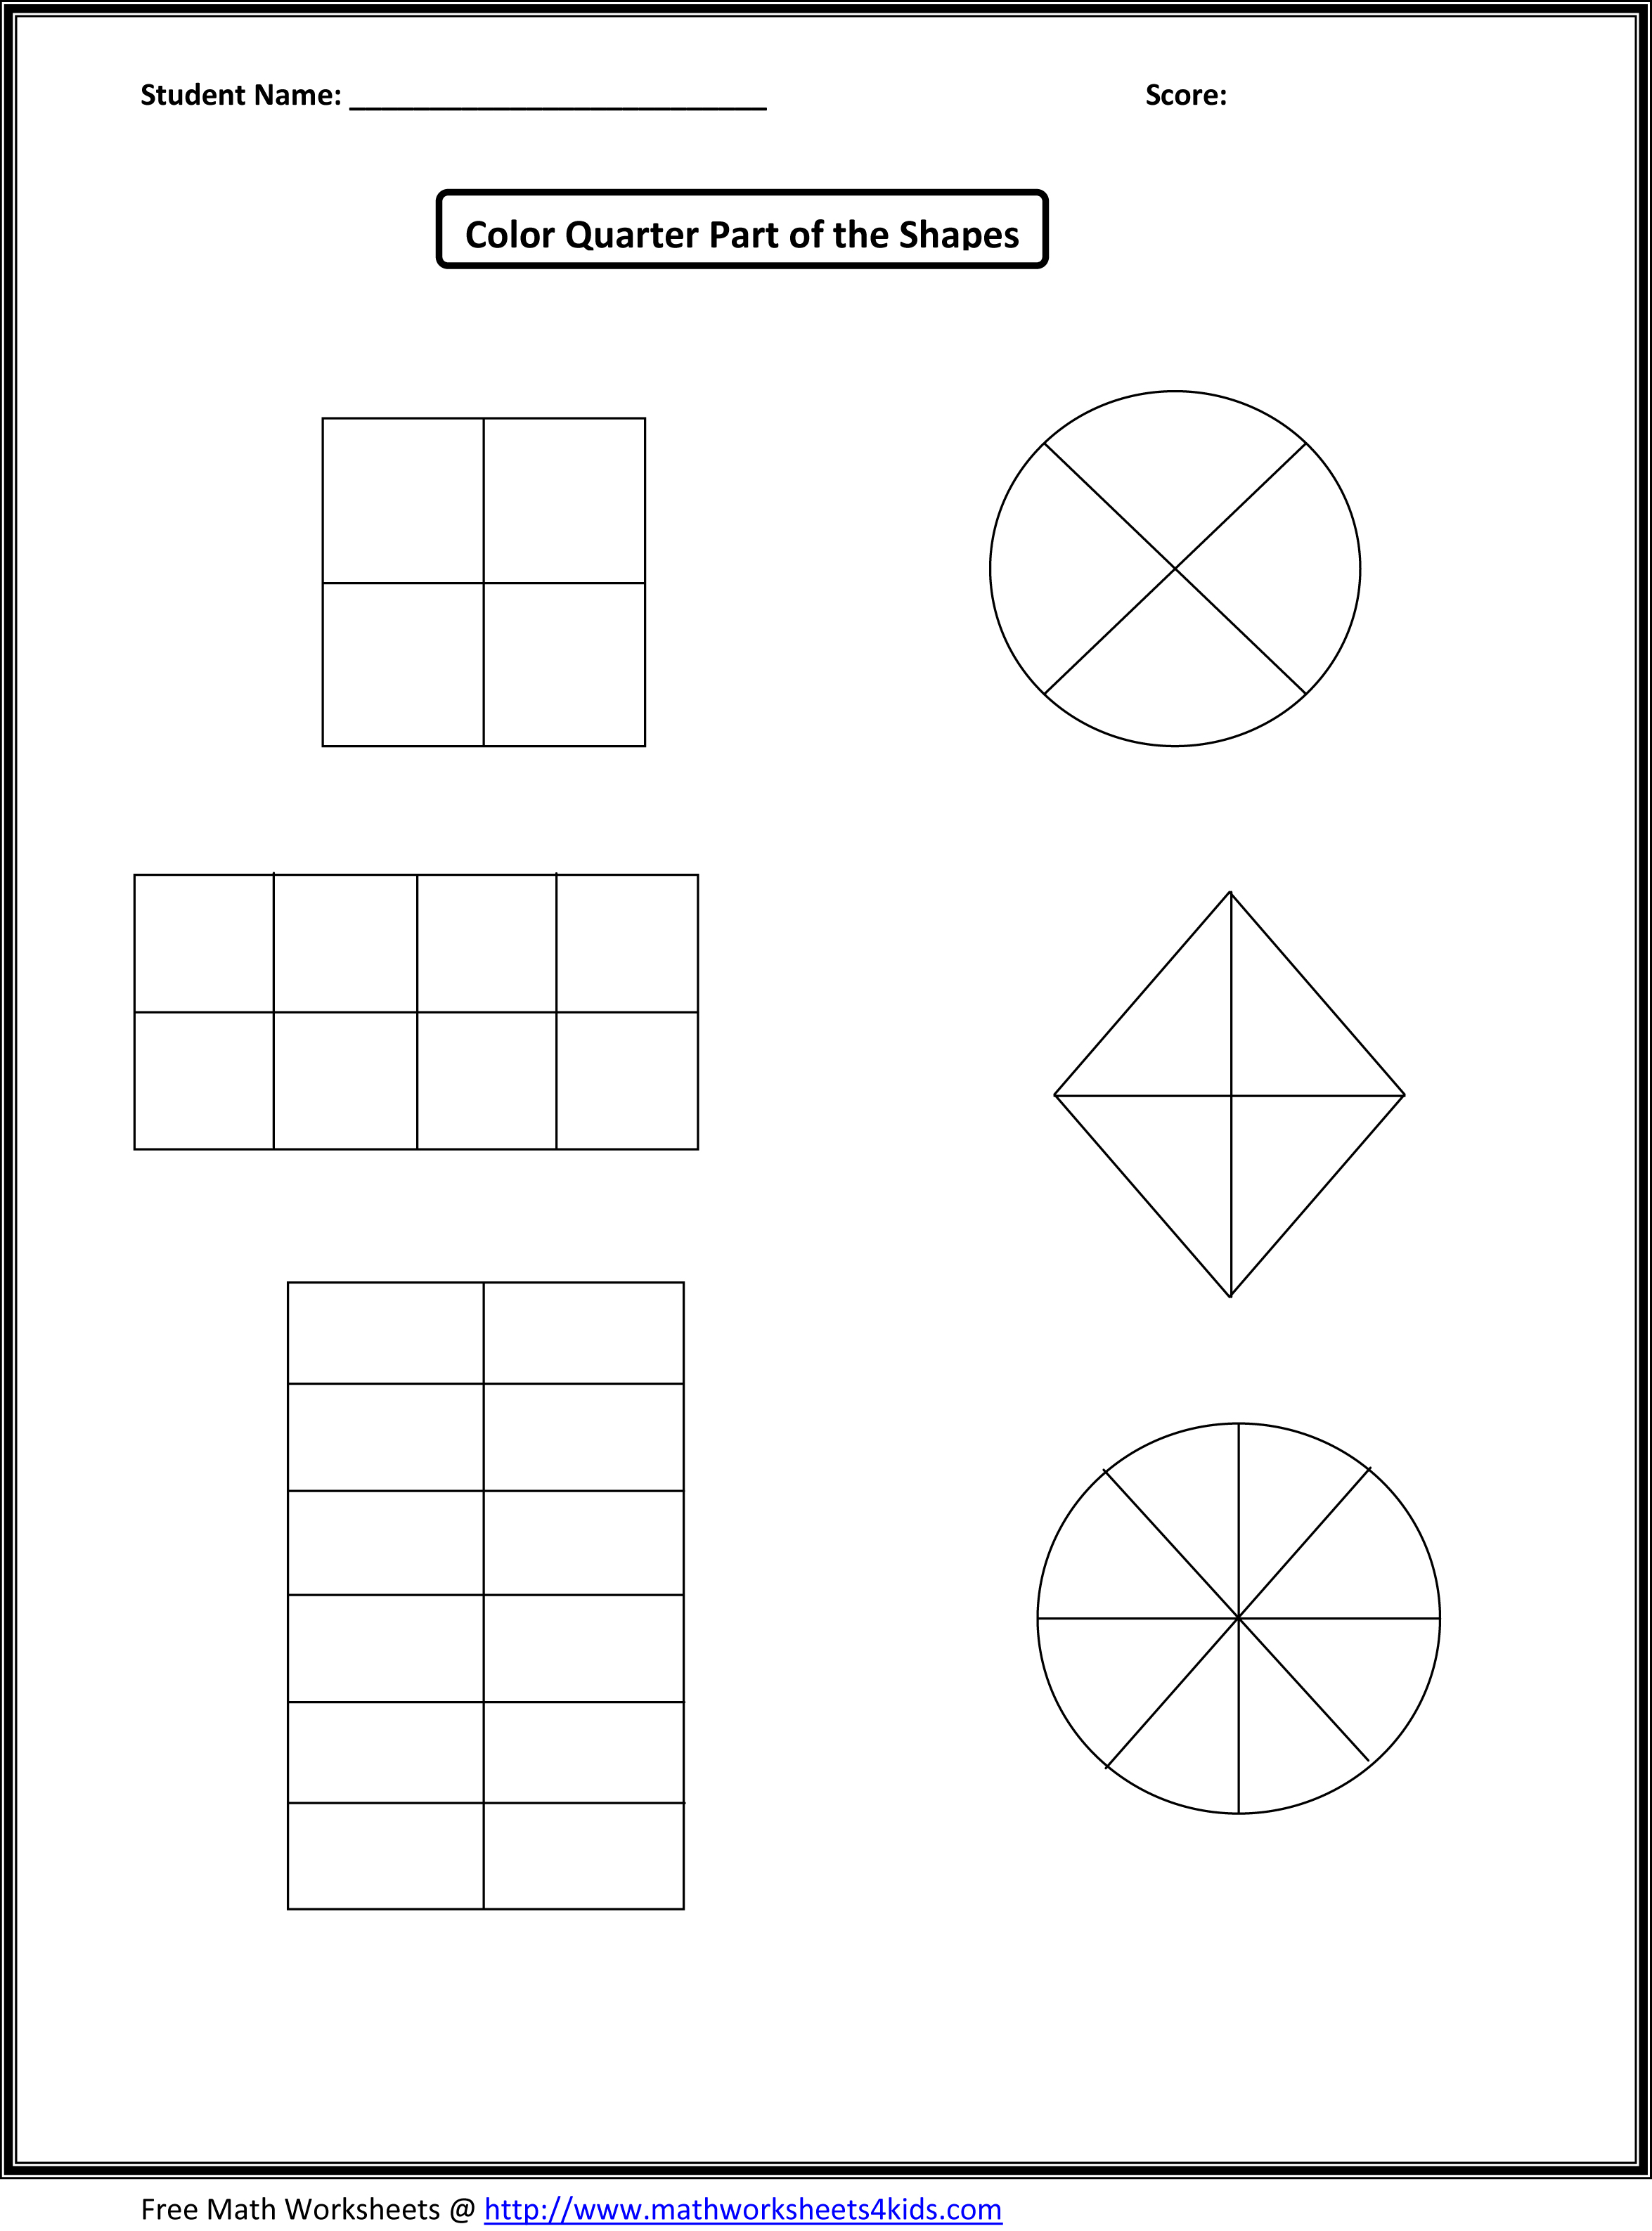 Worksheet 10541492 Shaded Fraction Worksheets Fraction FREE – 1 2 Fraction Worksheets